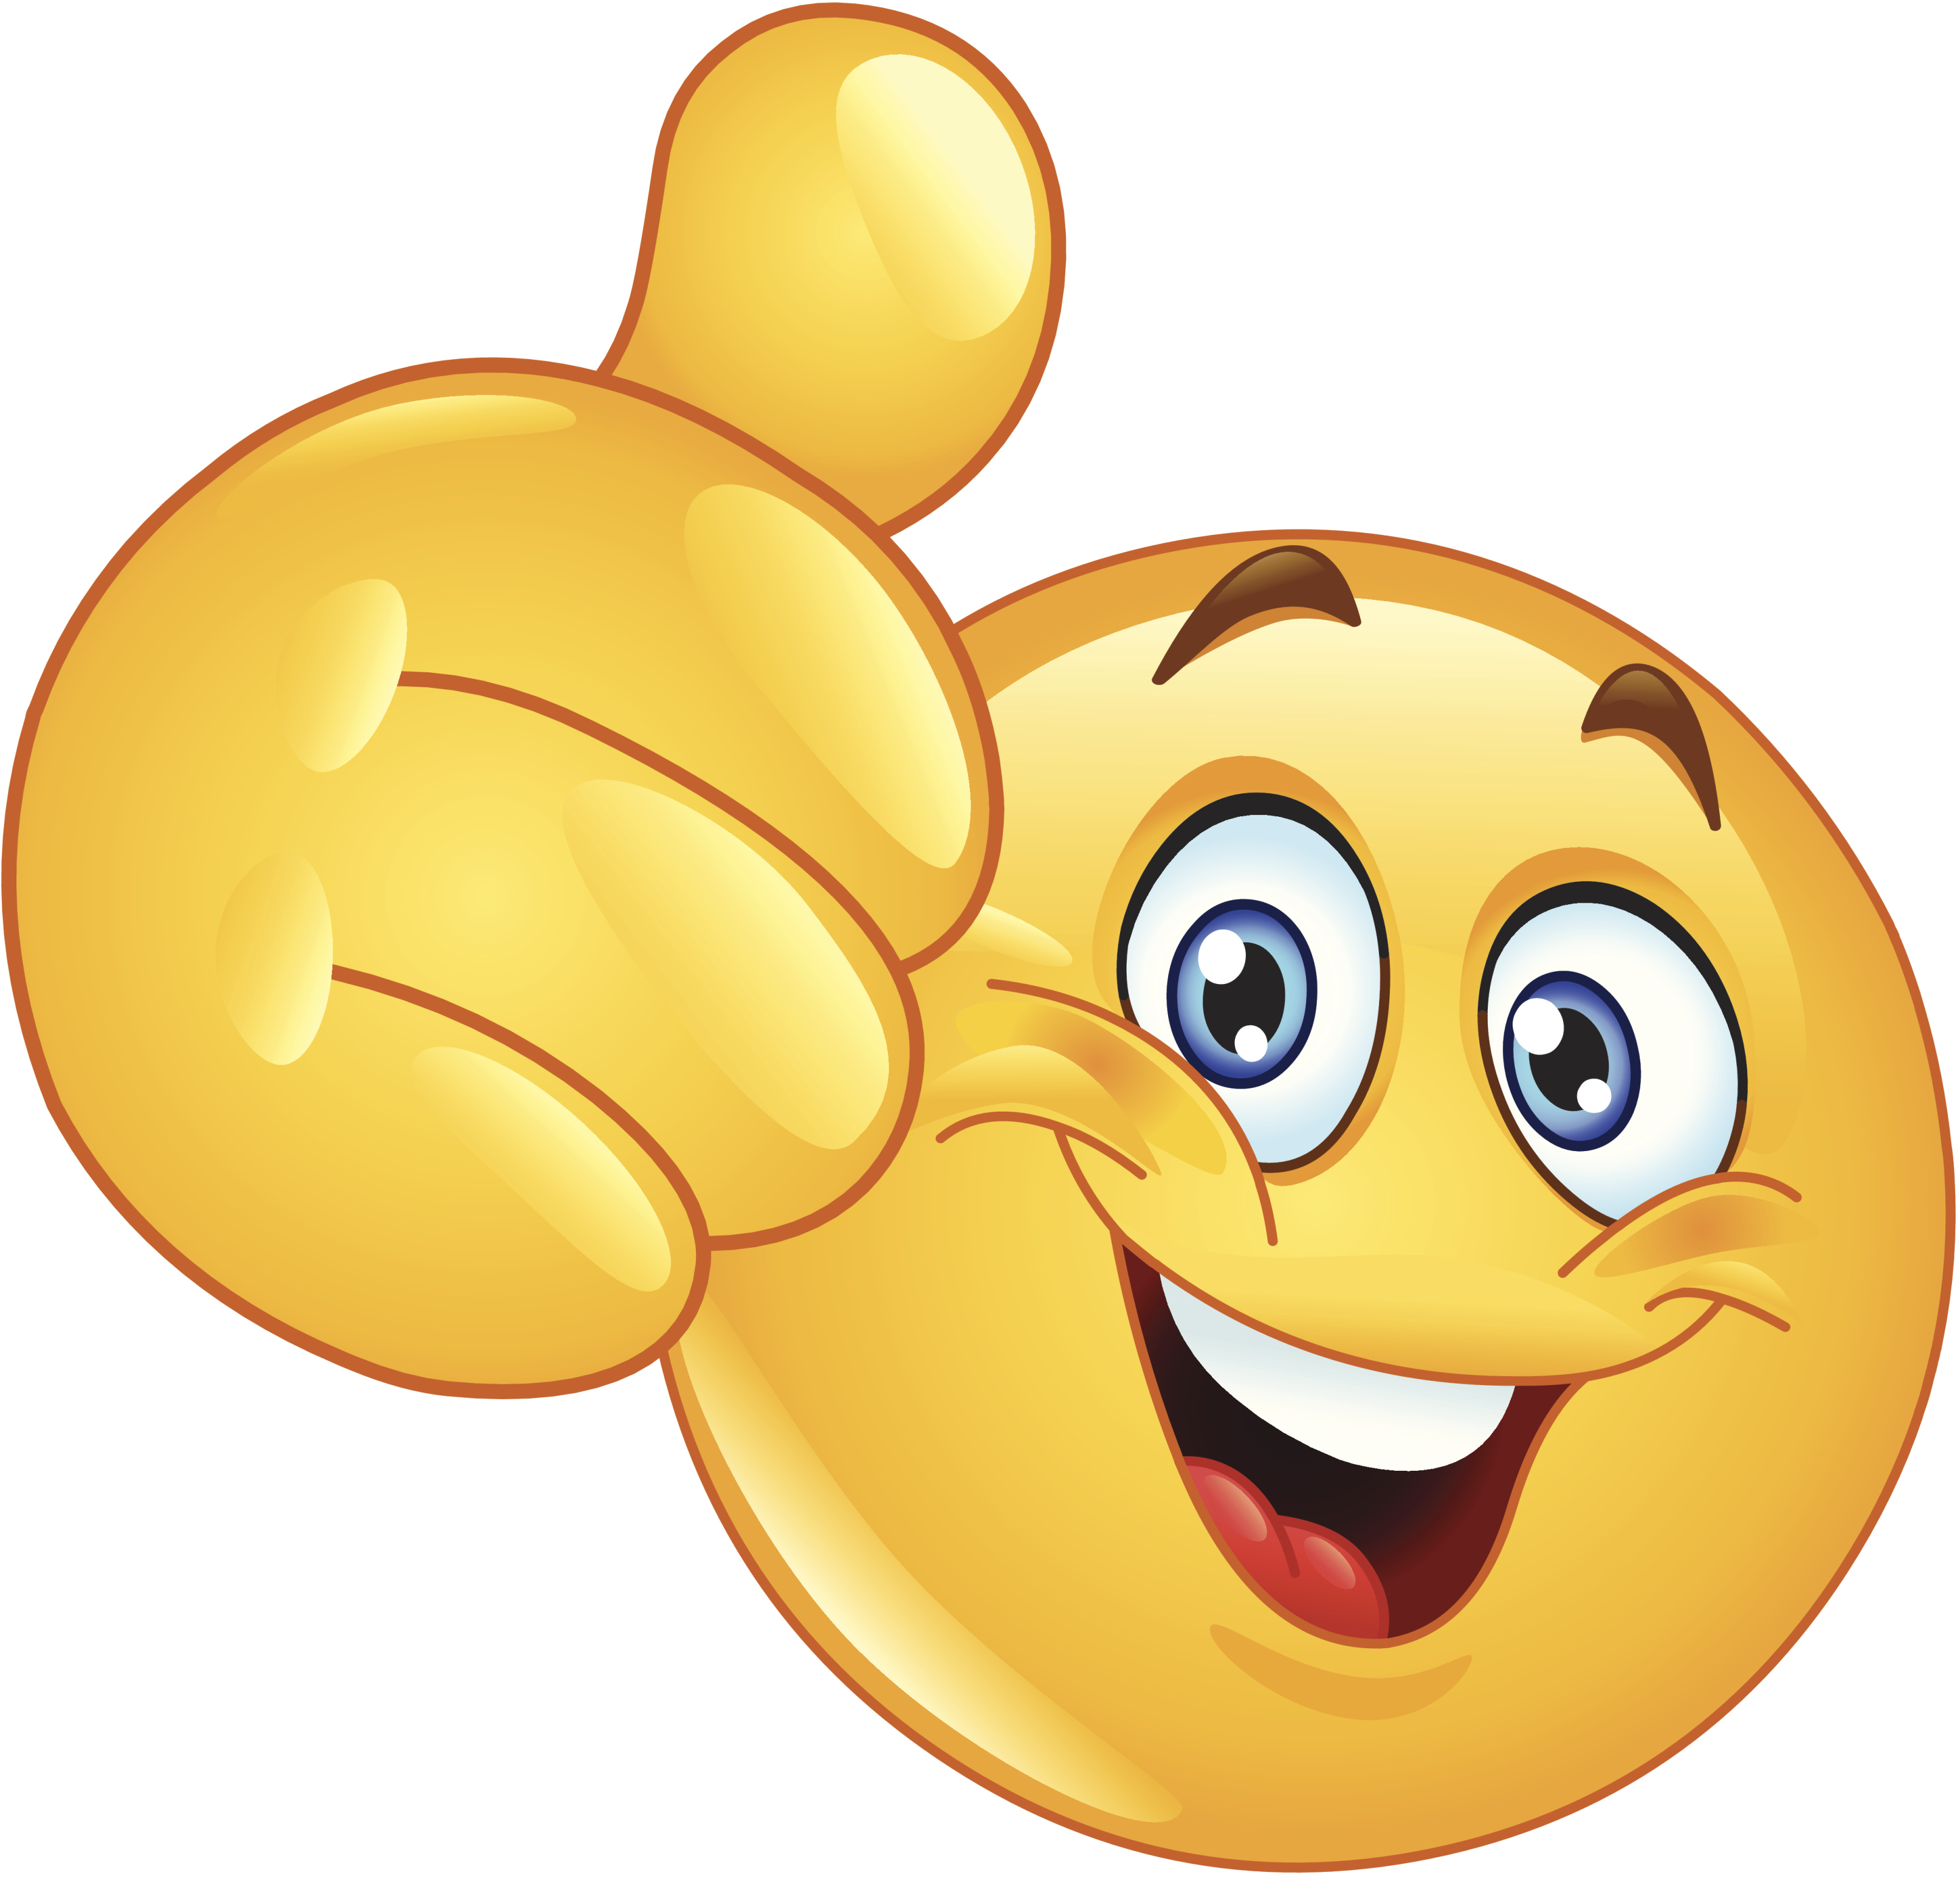 Moving clipart thumbs up BBCpersian7 smiley face collections Clipart